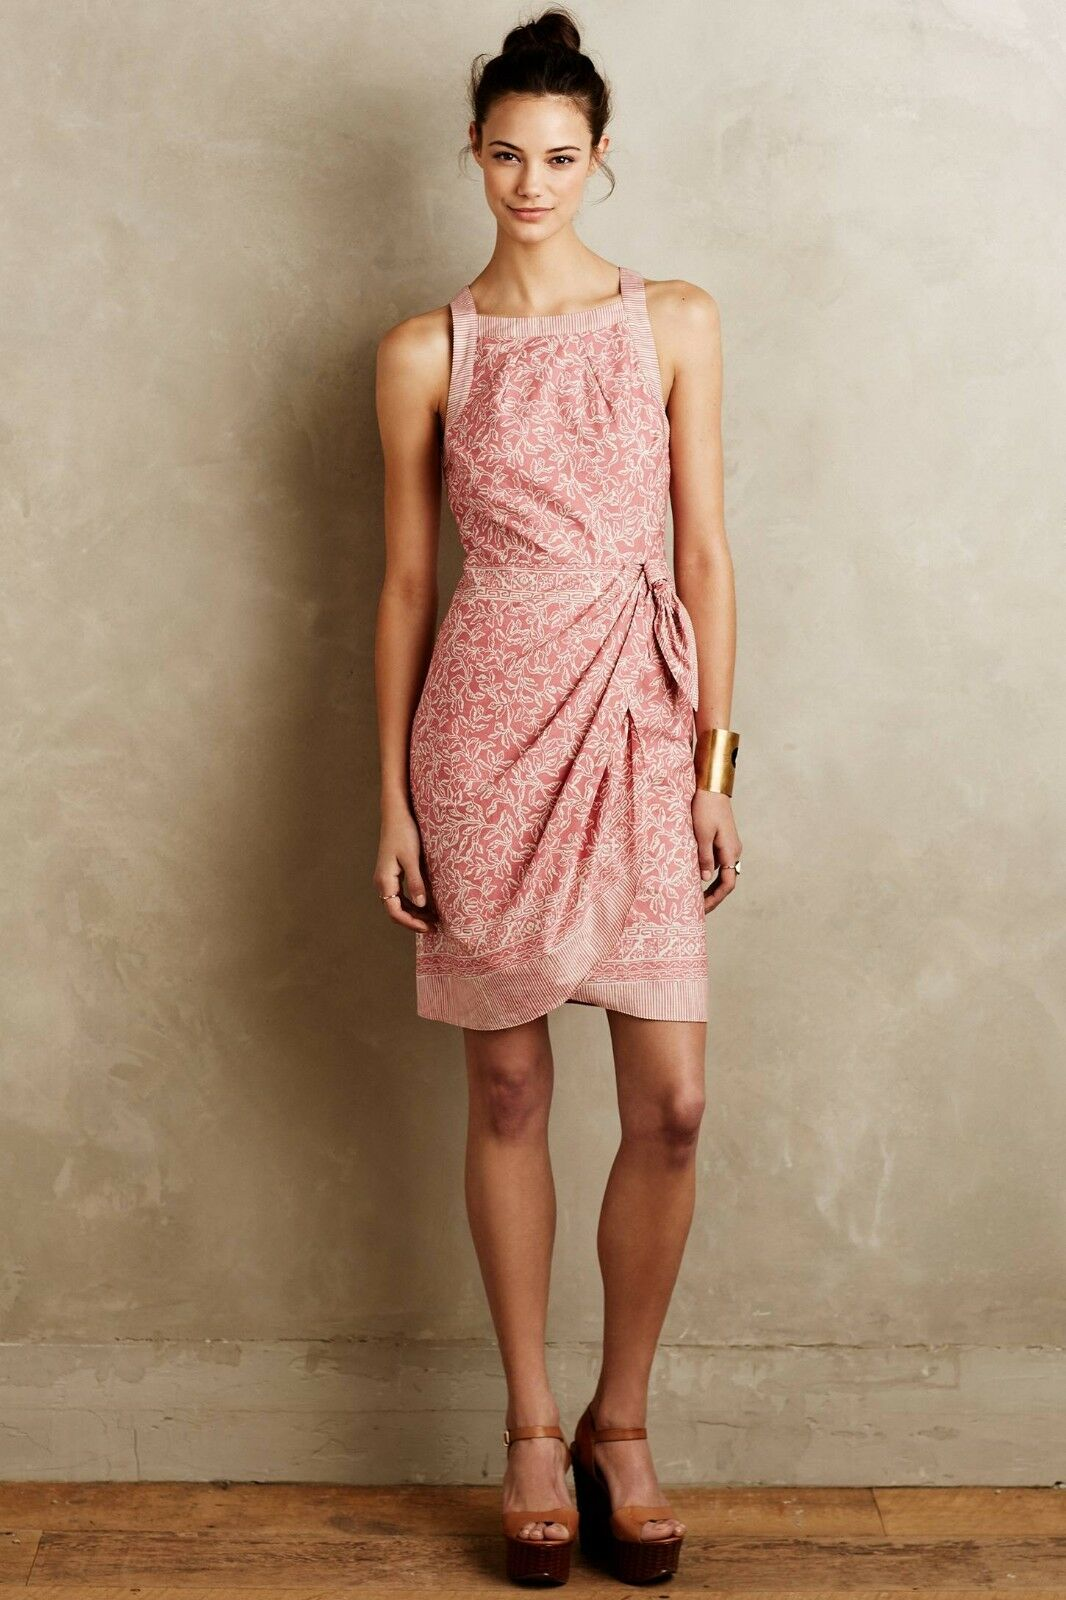 NWT NWOT Anthropologie Margate Dress  by HD in Paris Red motif Size M, XL